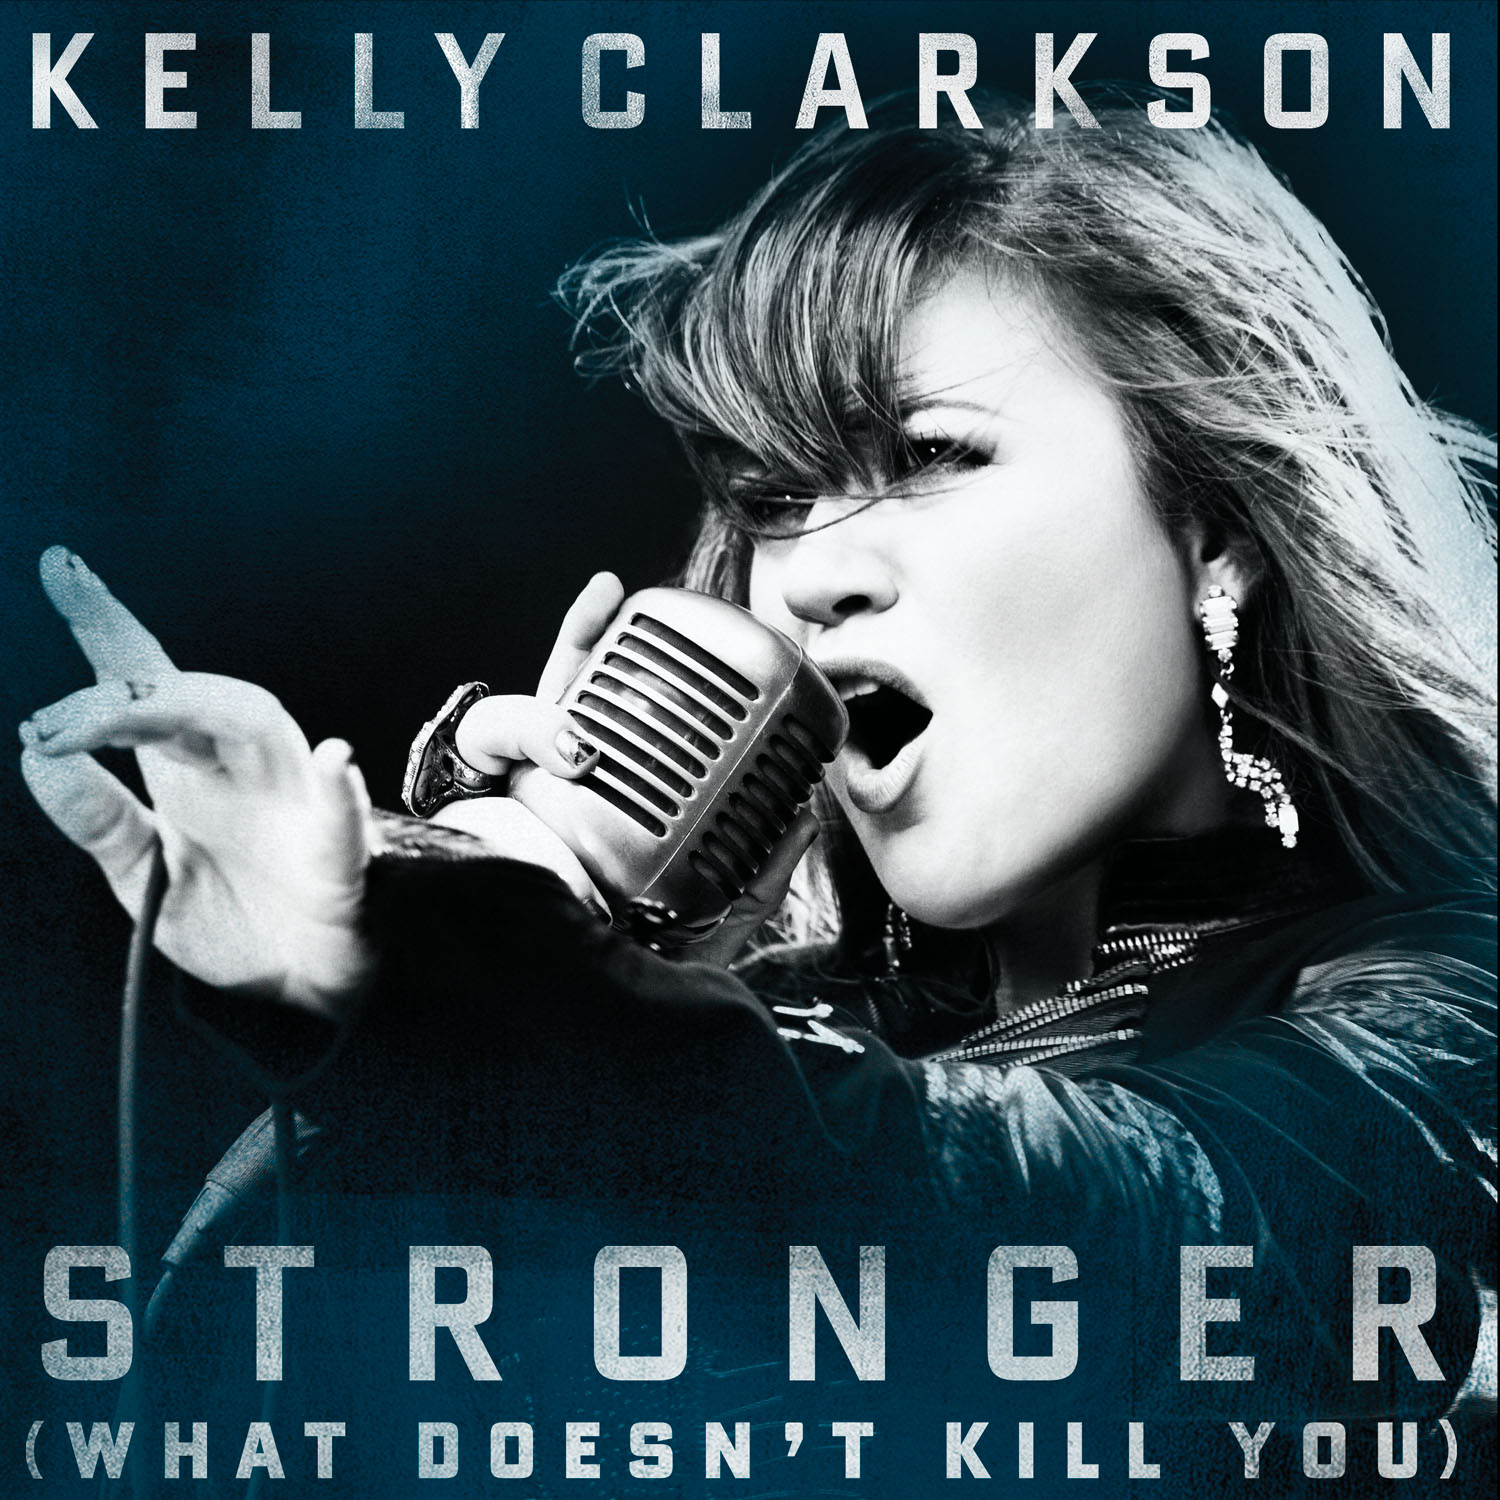 Stronger+What+Doesnt+Kill+You+(Kelly+Clarkson).jpg